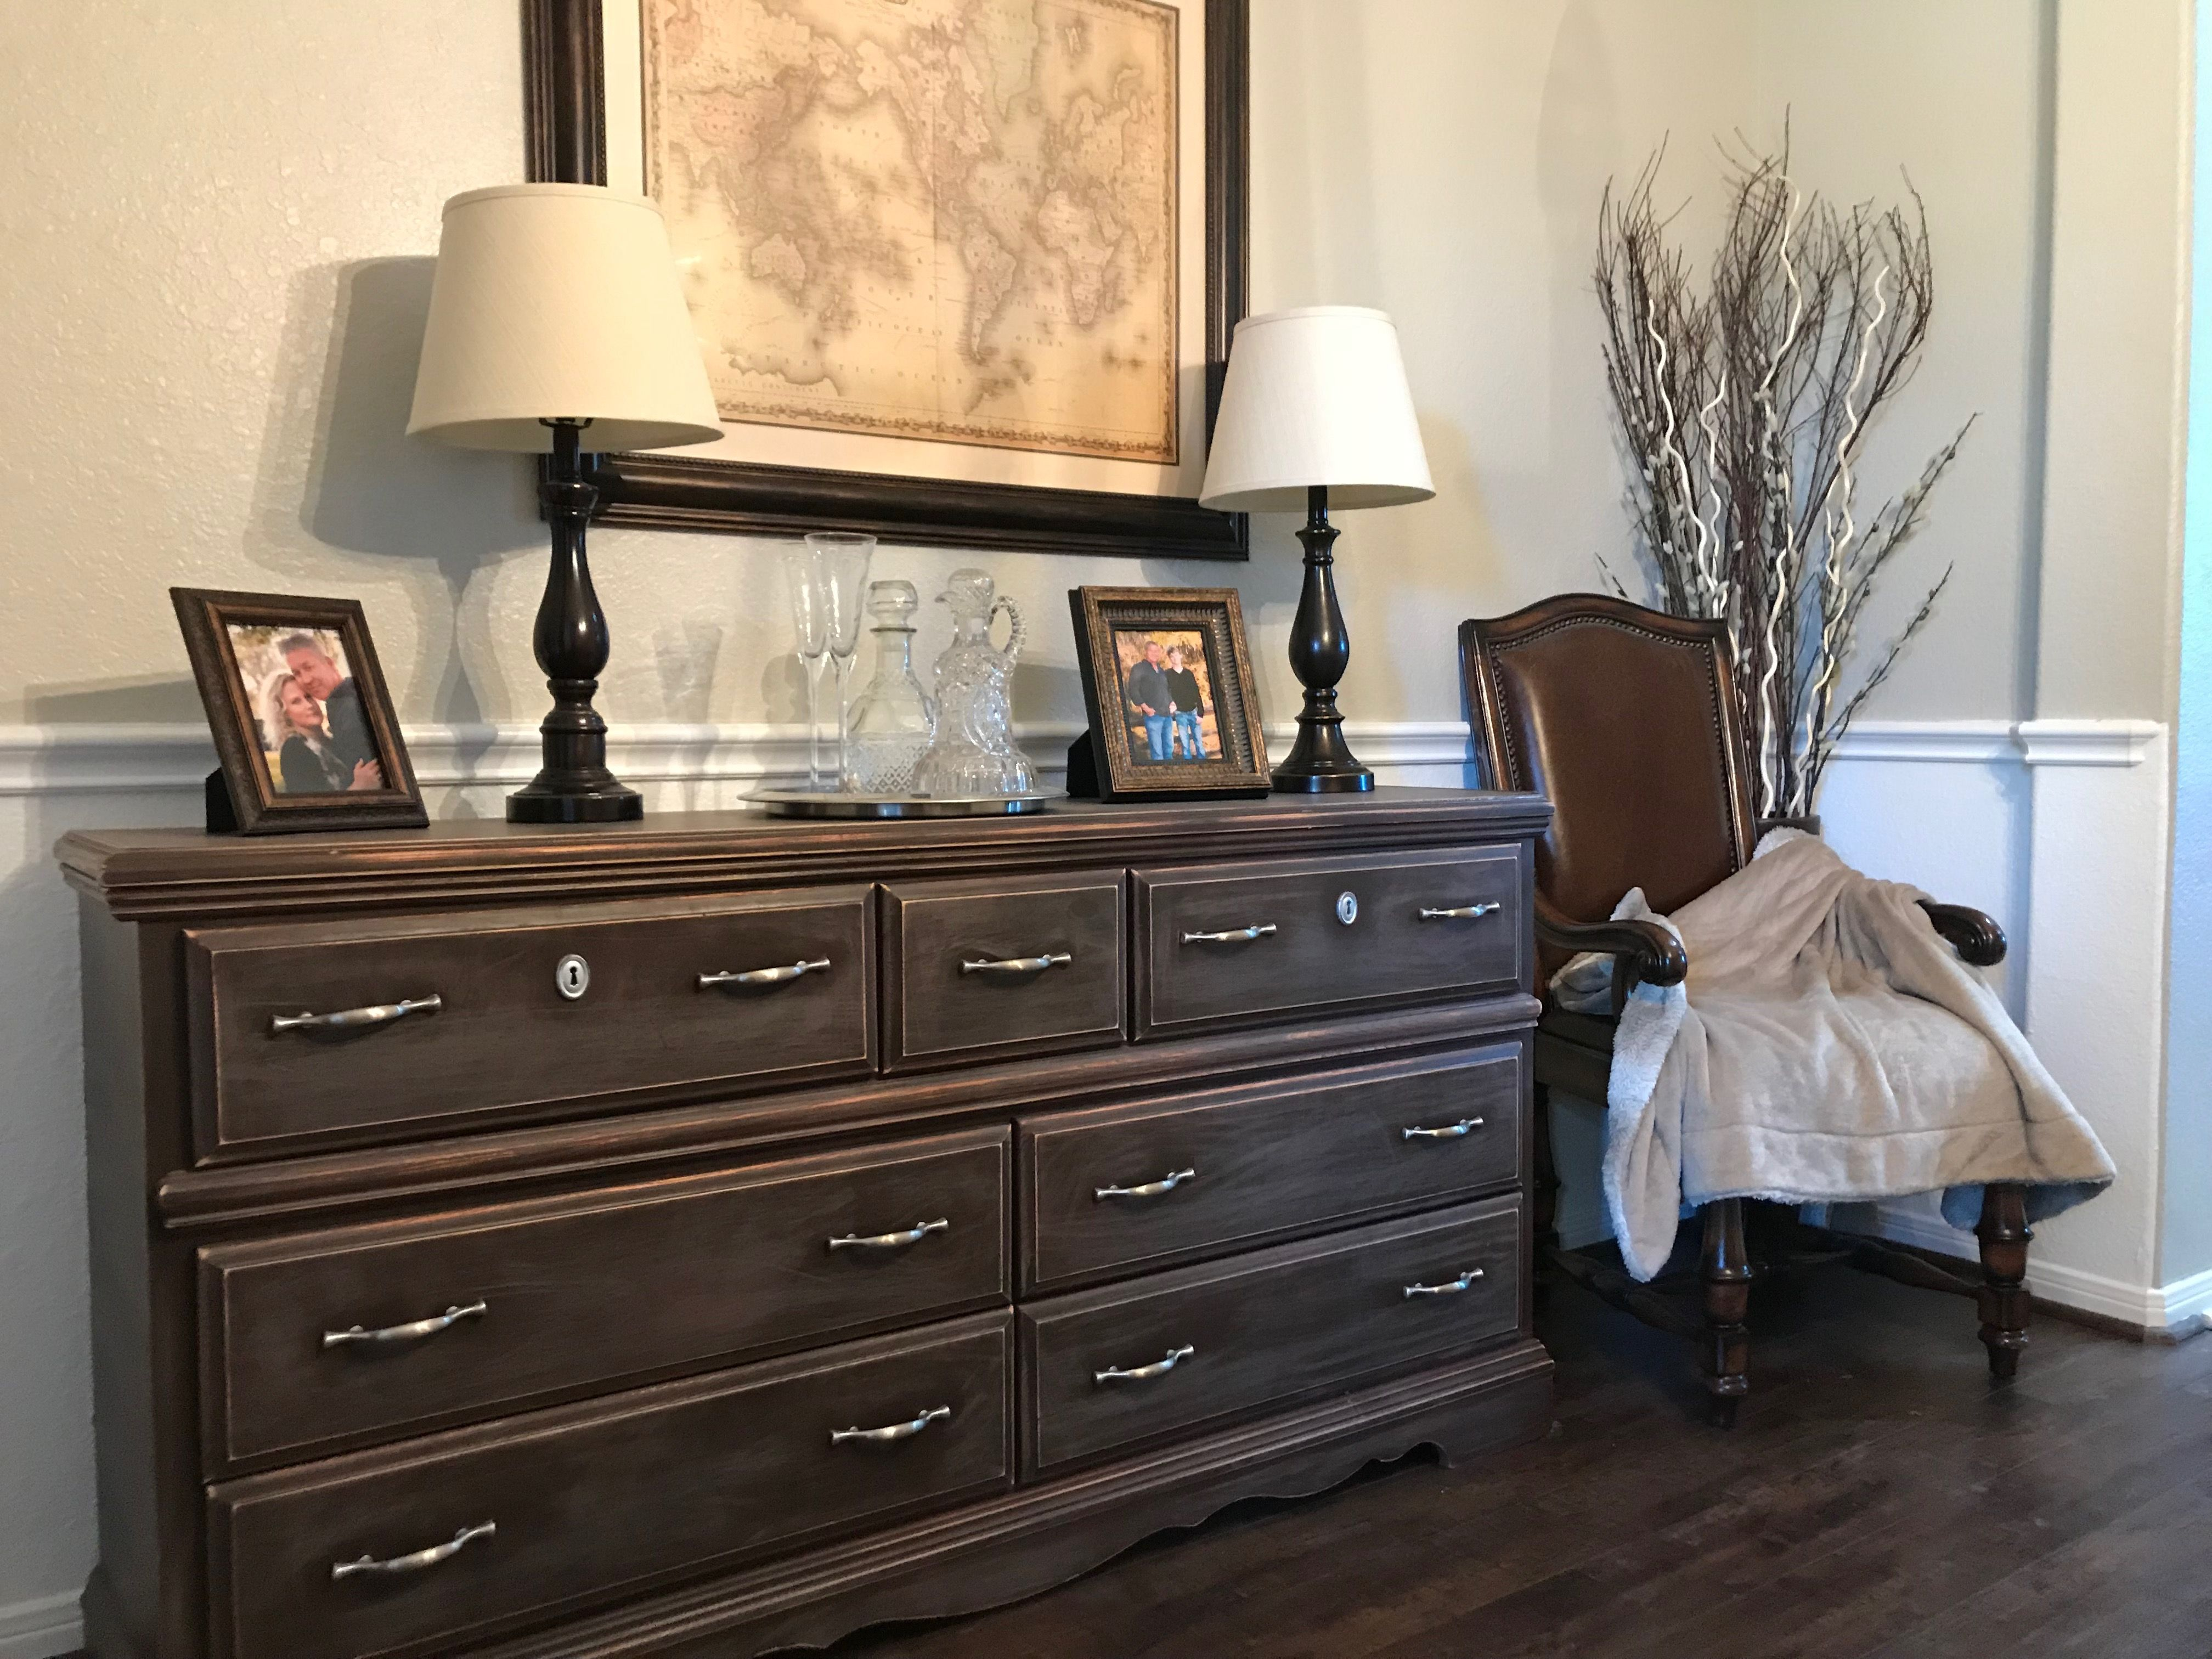 Refurbished dresser with mocha paint and weathered look ...